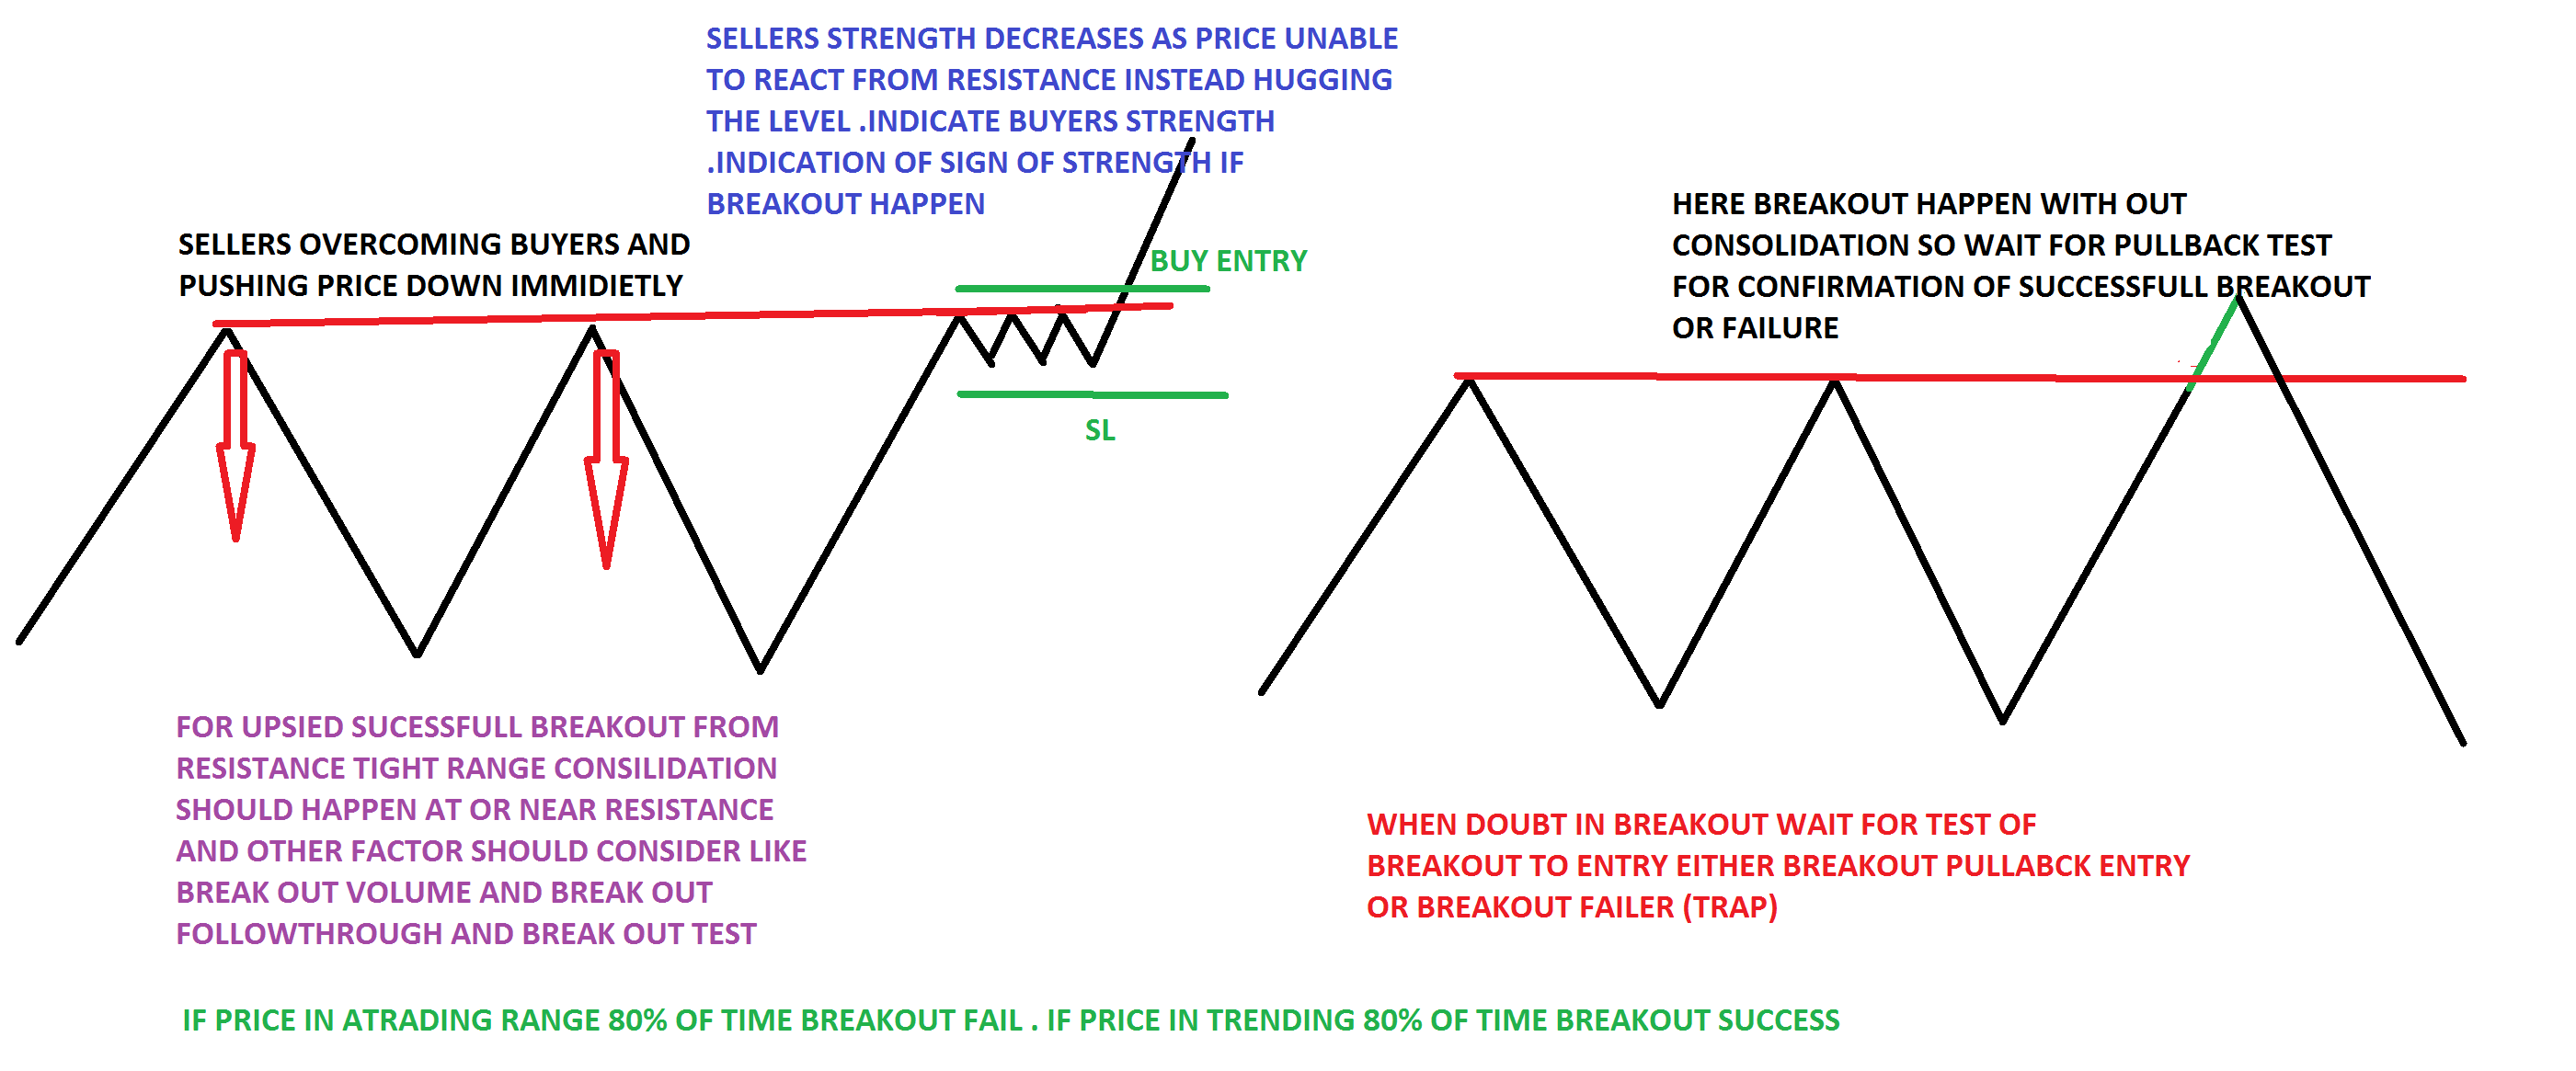 Don't trade breakouts without consolidation